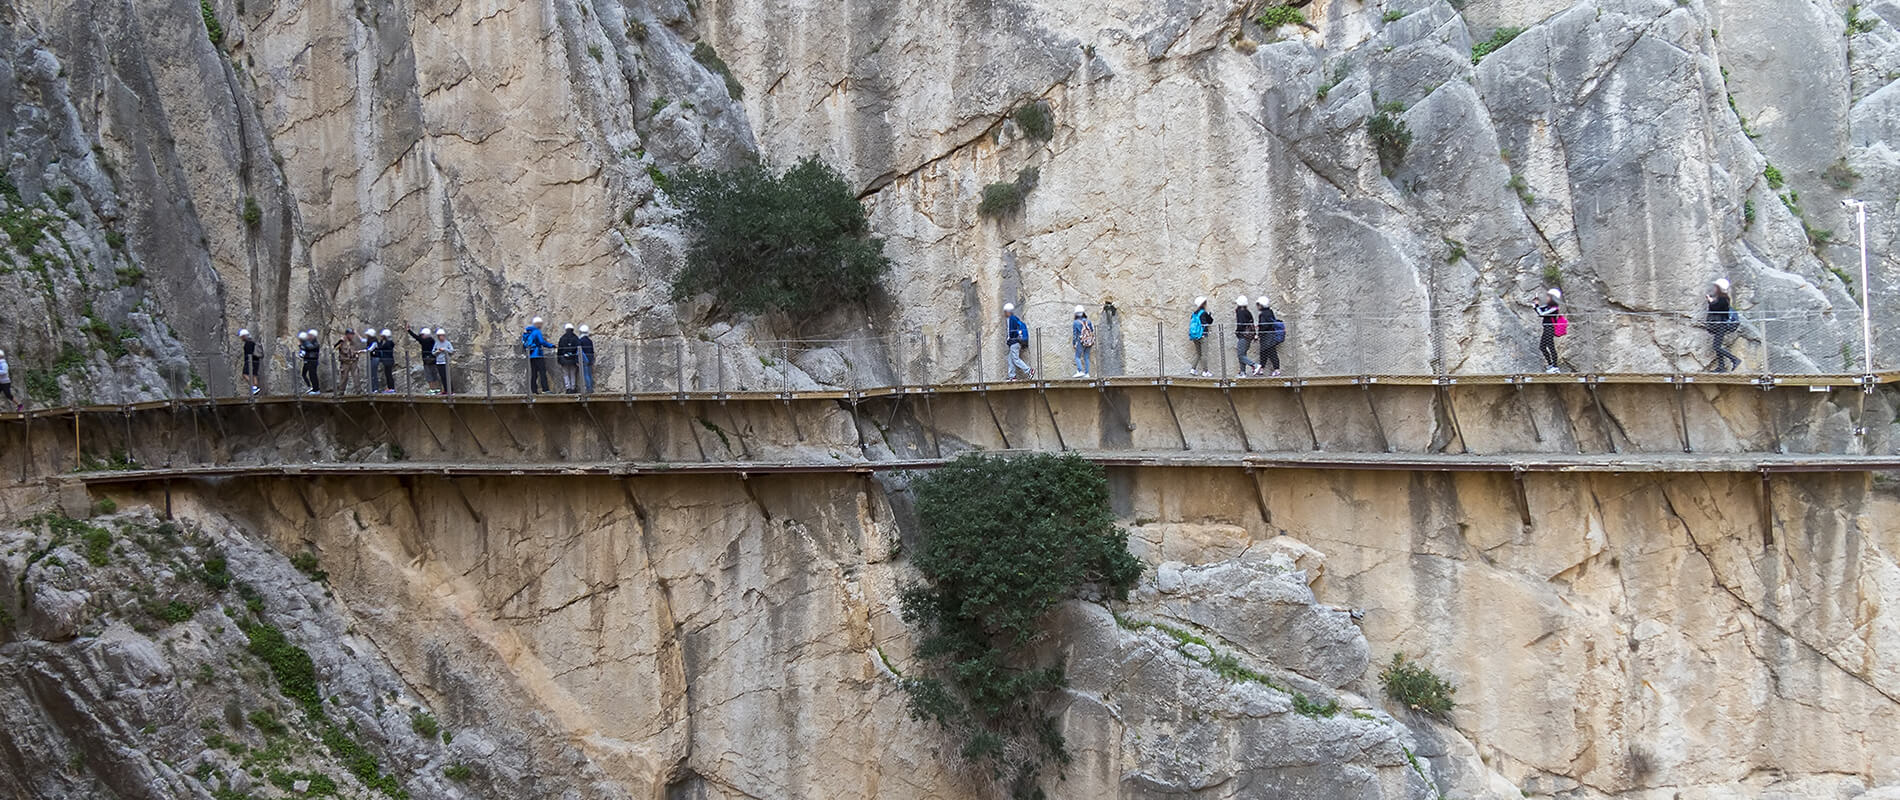 Caminito del Rey, the Most Dangerous Path in the World